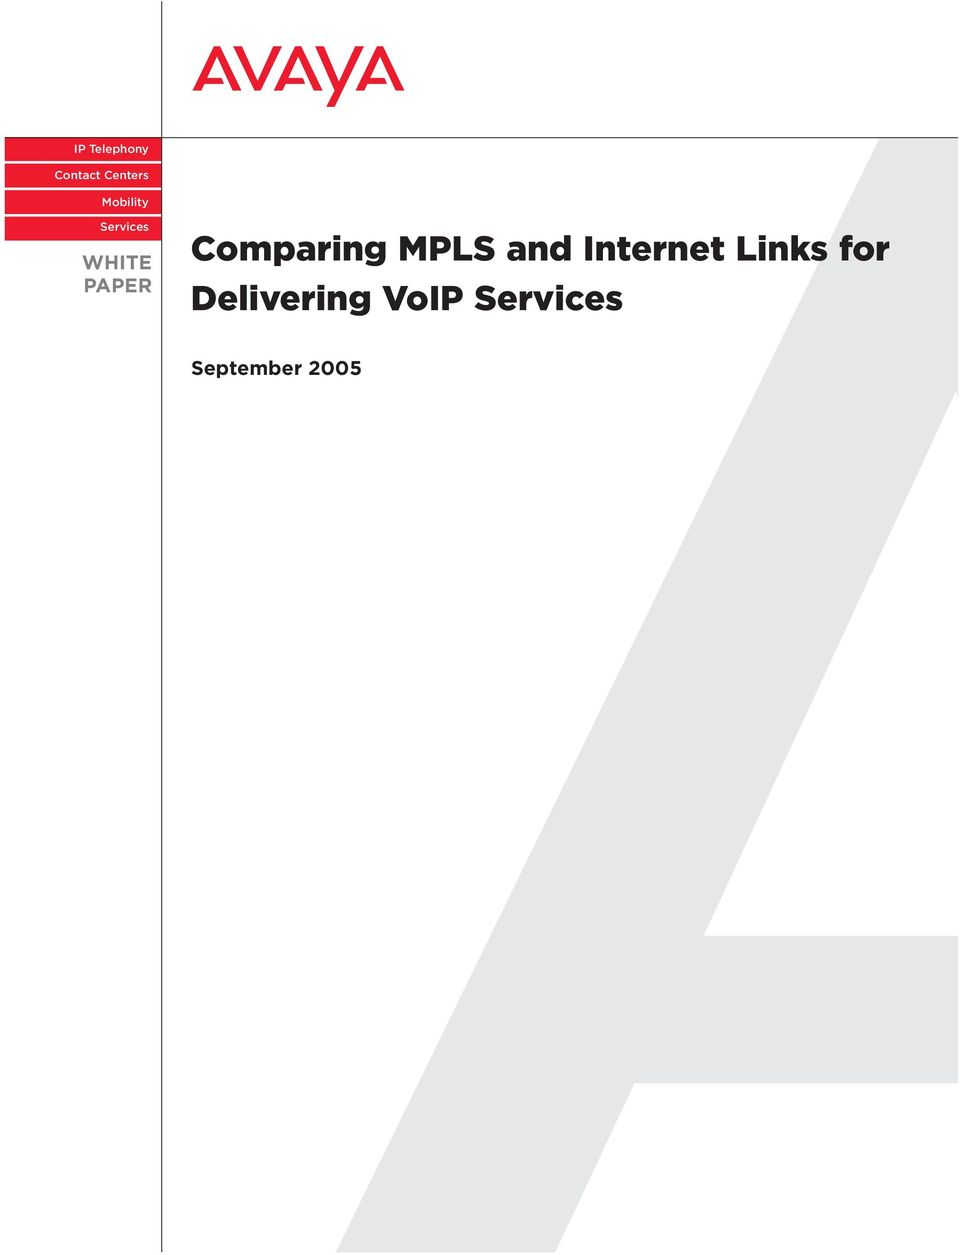 Comparing MPLS and Internet Links